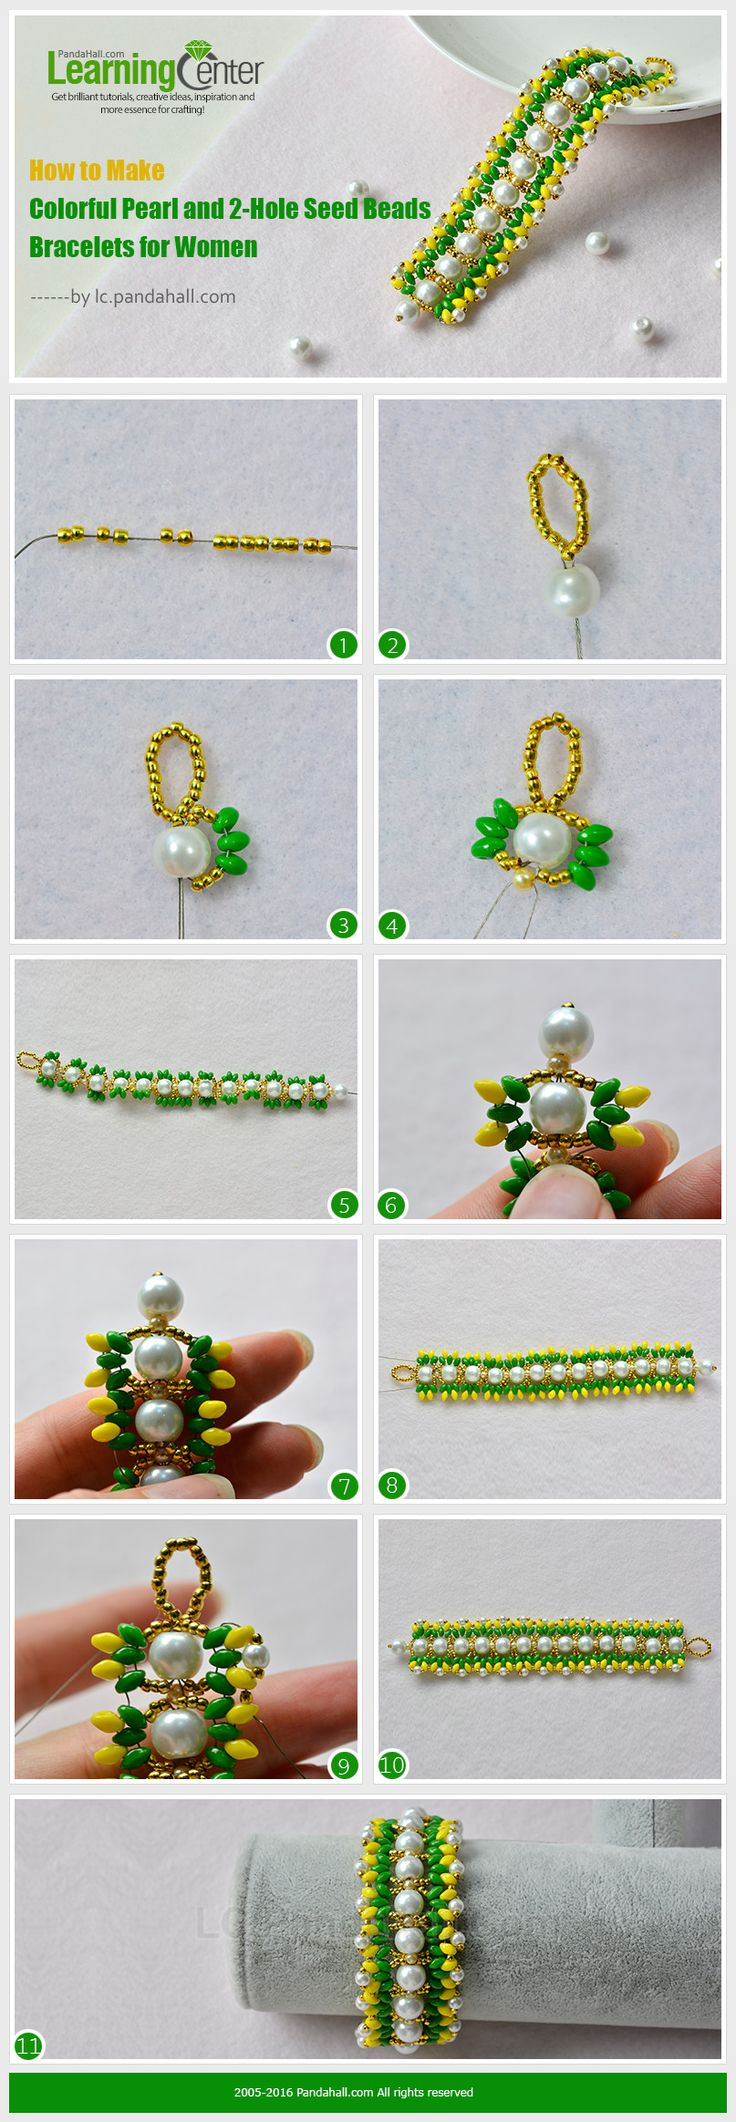 How to Make Colorful Pearl and 2-Hole Seed Beads Bracelets for Women from LC.Pandahall.com